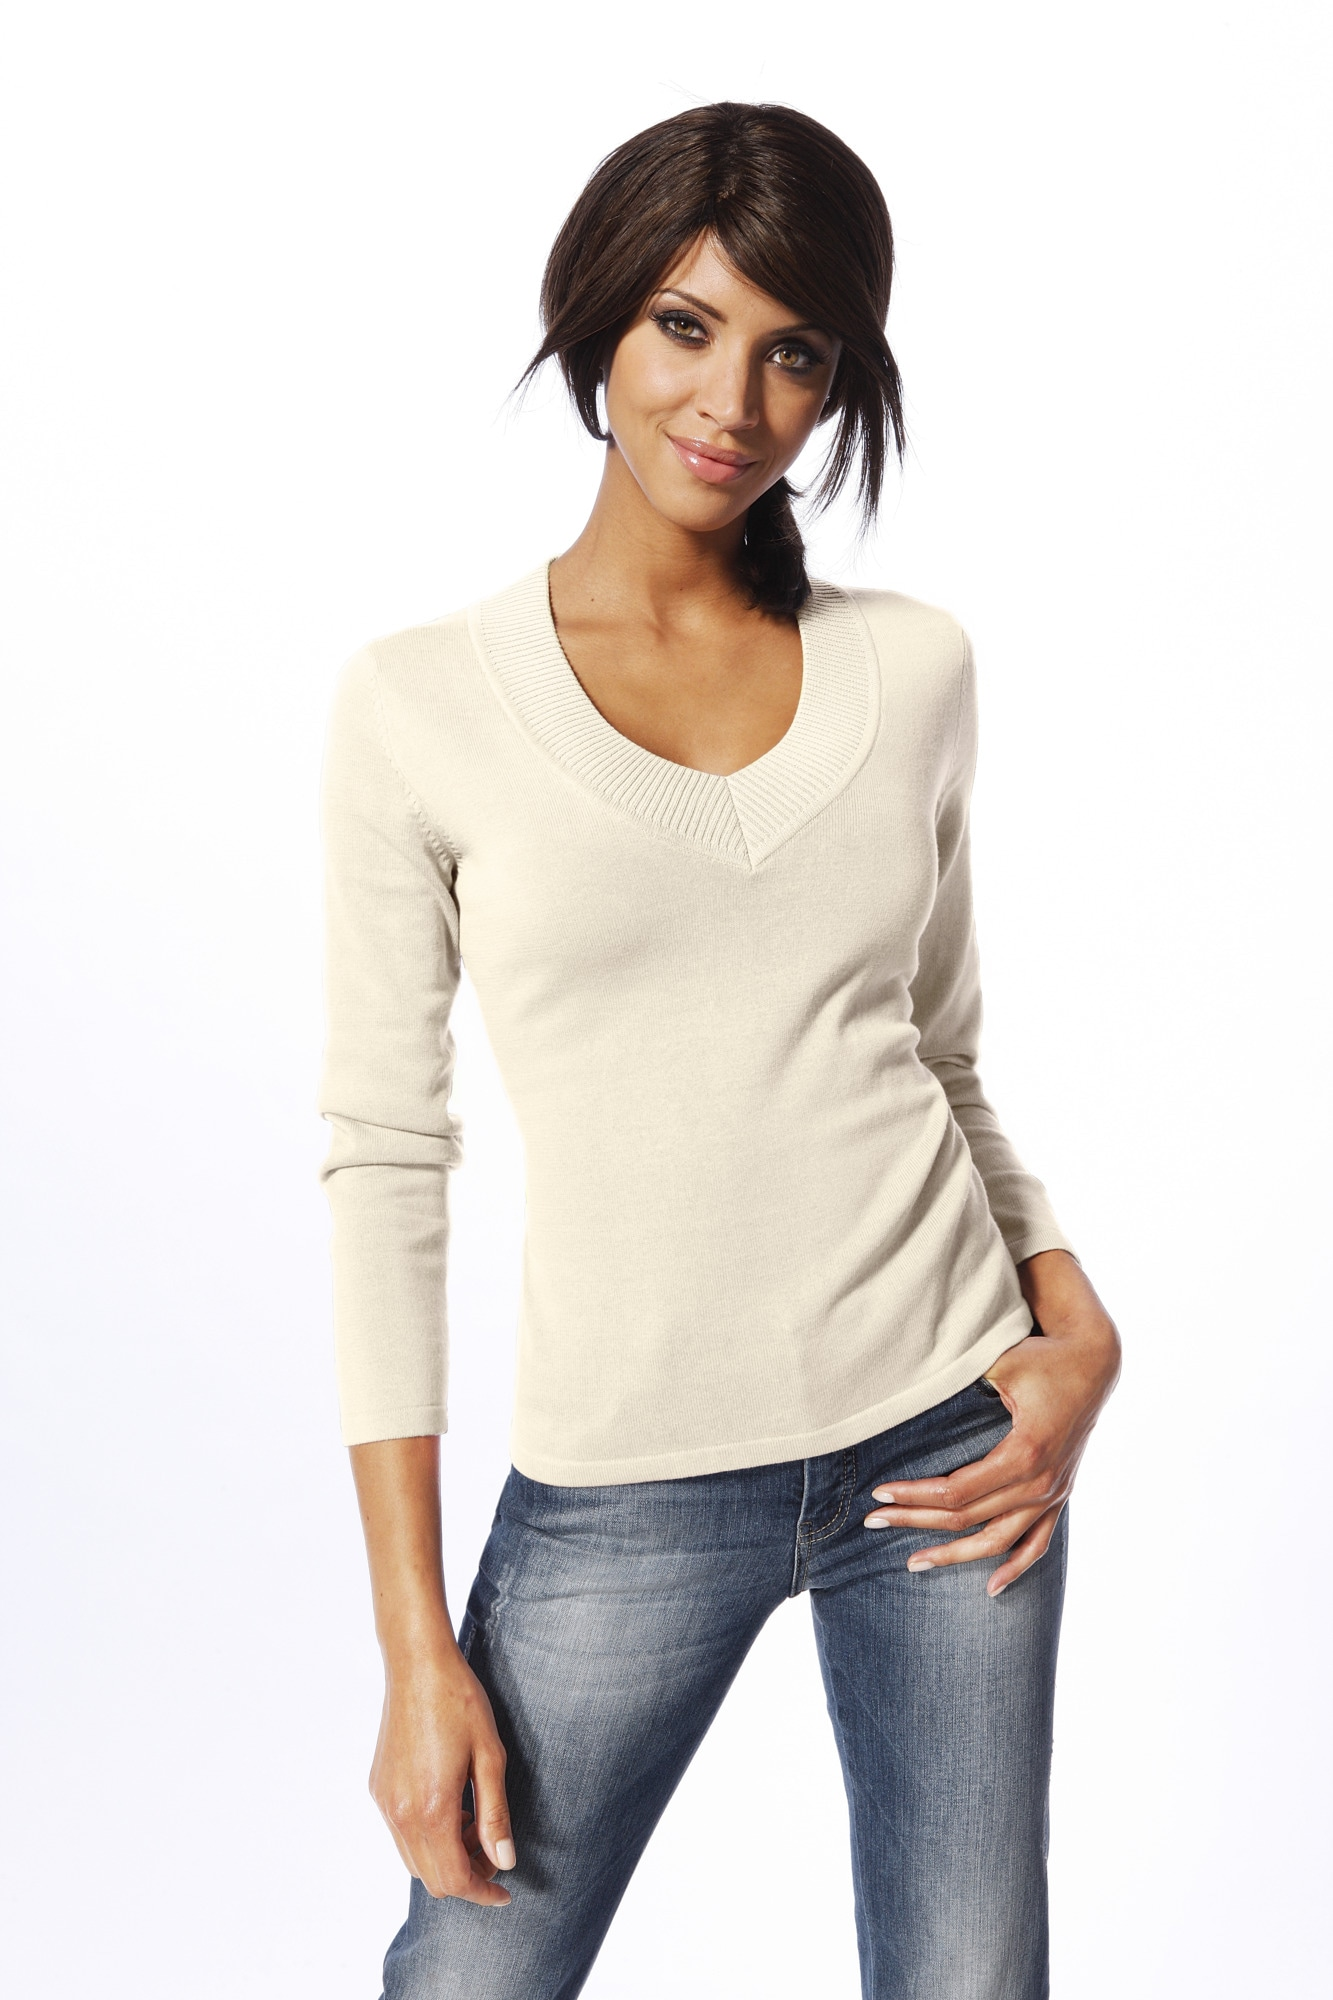 heine CASUAL V-Pullover in taillierter Form | Bekleidung > Pullover > V-Pullover | Weiß | heine